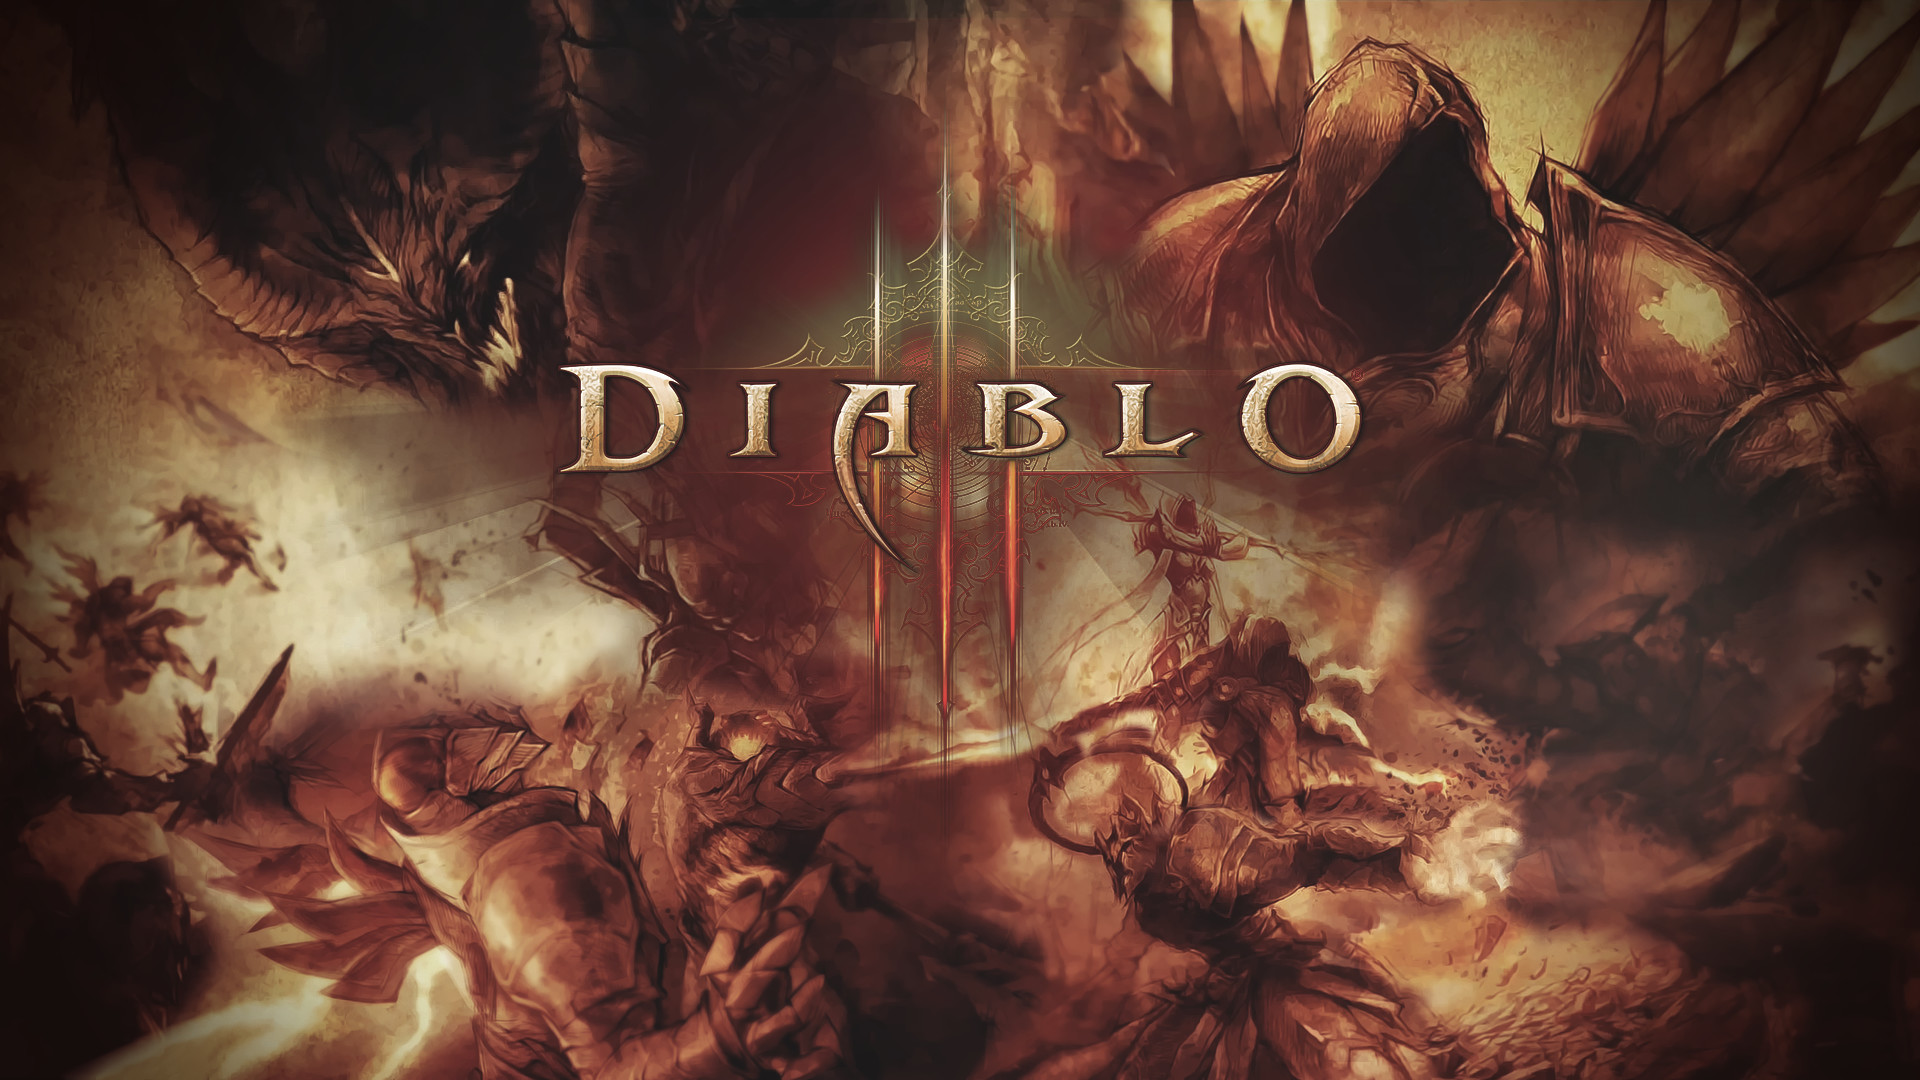 1920x1080 ... By Kaycee Cahn PC.69: Diablo 3 Blizzard Pictures ...